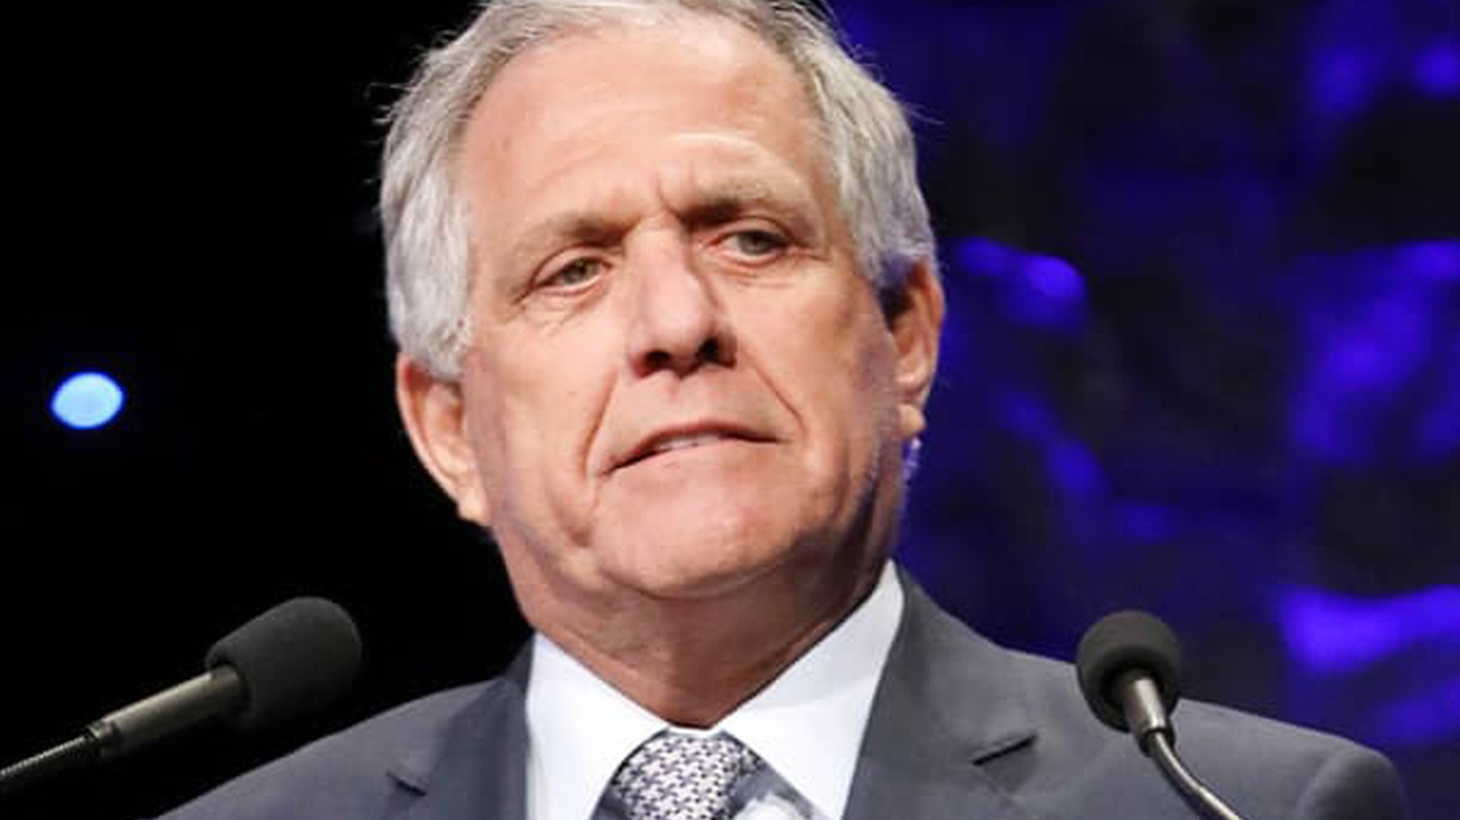 Over the weekend, the New Yorker published a second story by Ronan Farrow about Les Moonves. This one chronicled six more allegations of graphic sexual misconduct by the CBS CEO. Moonves is now out at the company.